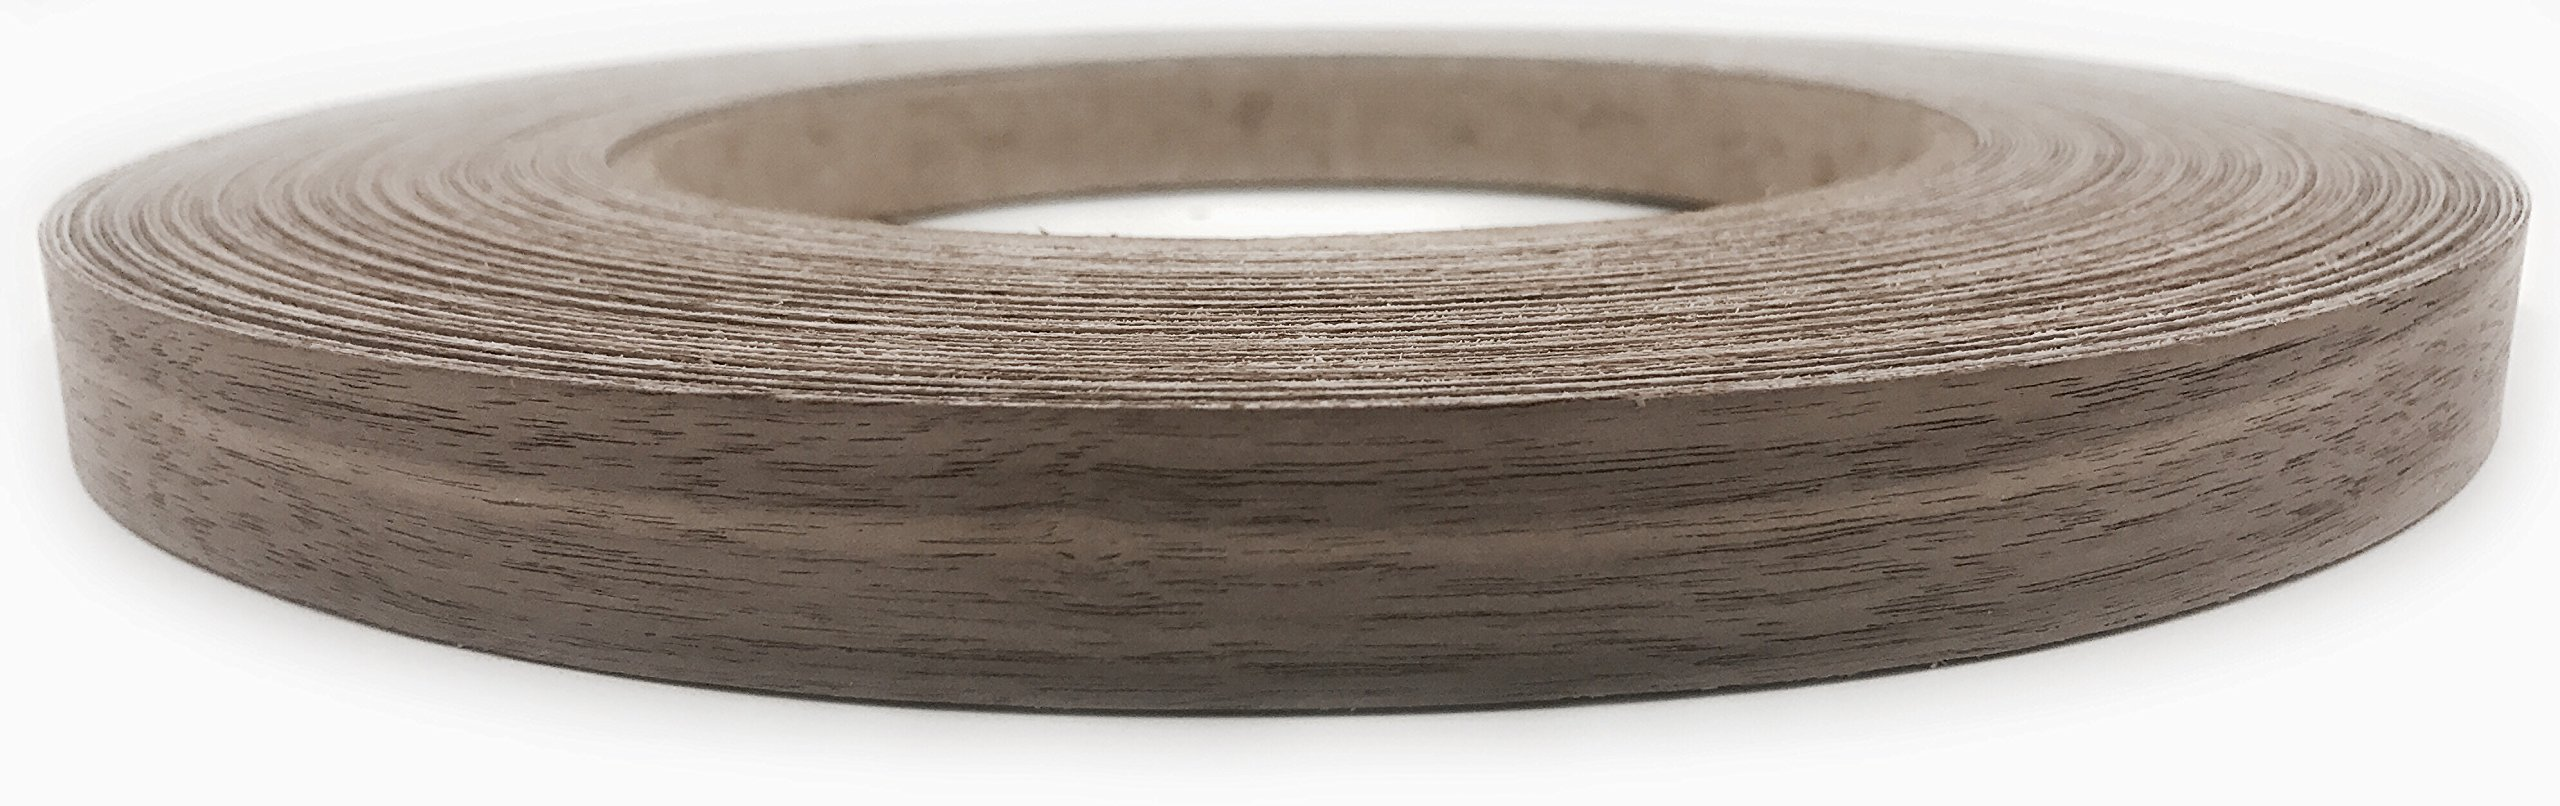 Walnut Wood Veneer Edgebanding Preglued 7/8'' X 250' Roll, Iron on with Hot Melt Adhesive, Sanded to perfection. Easy application, Made in USA.